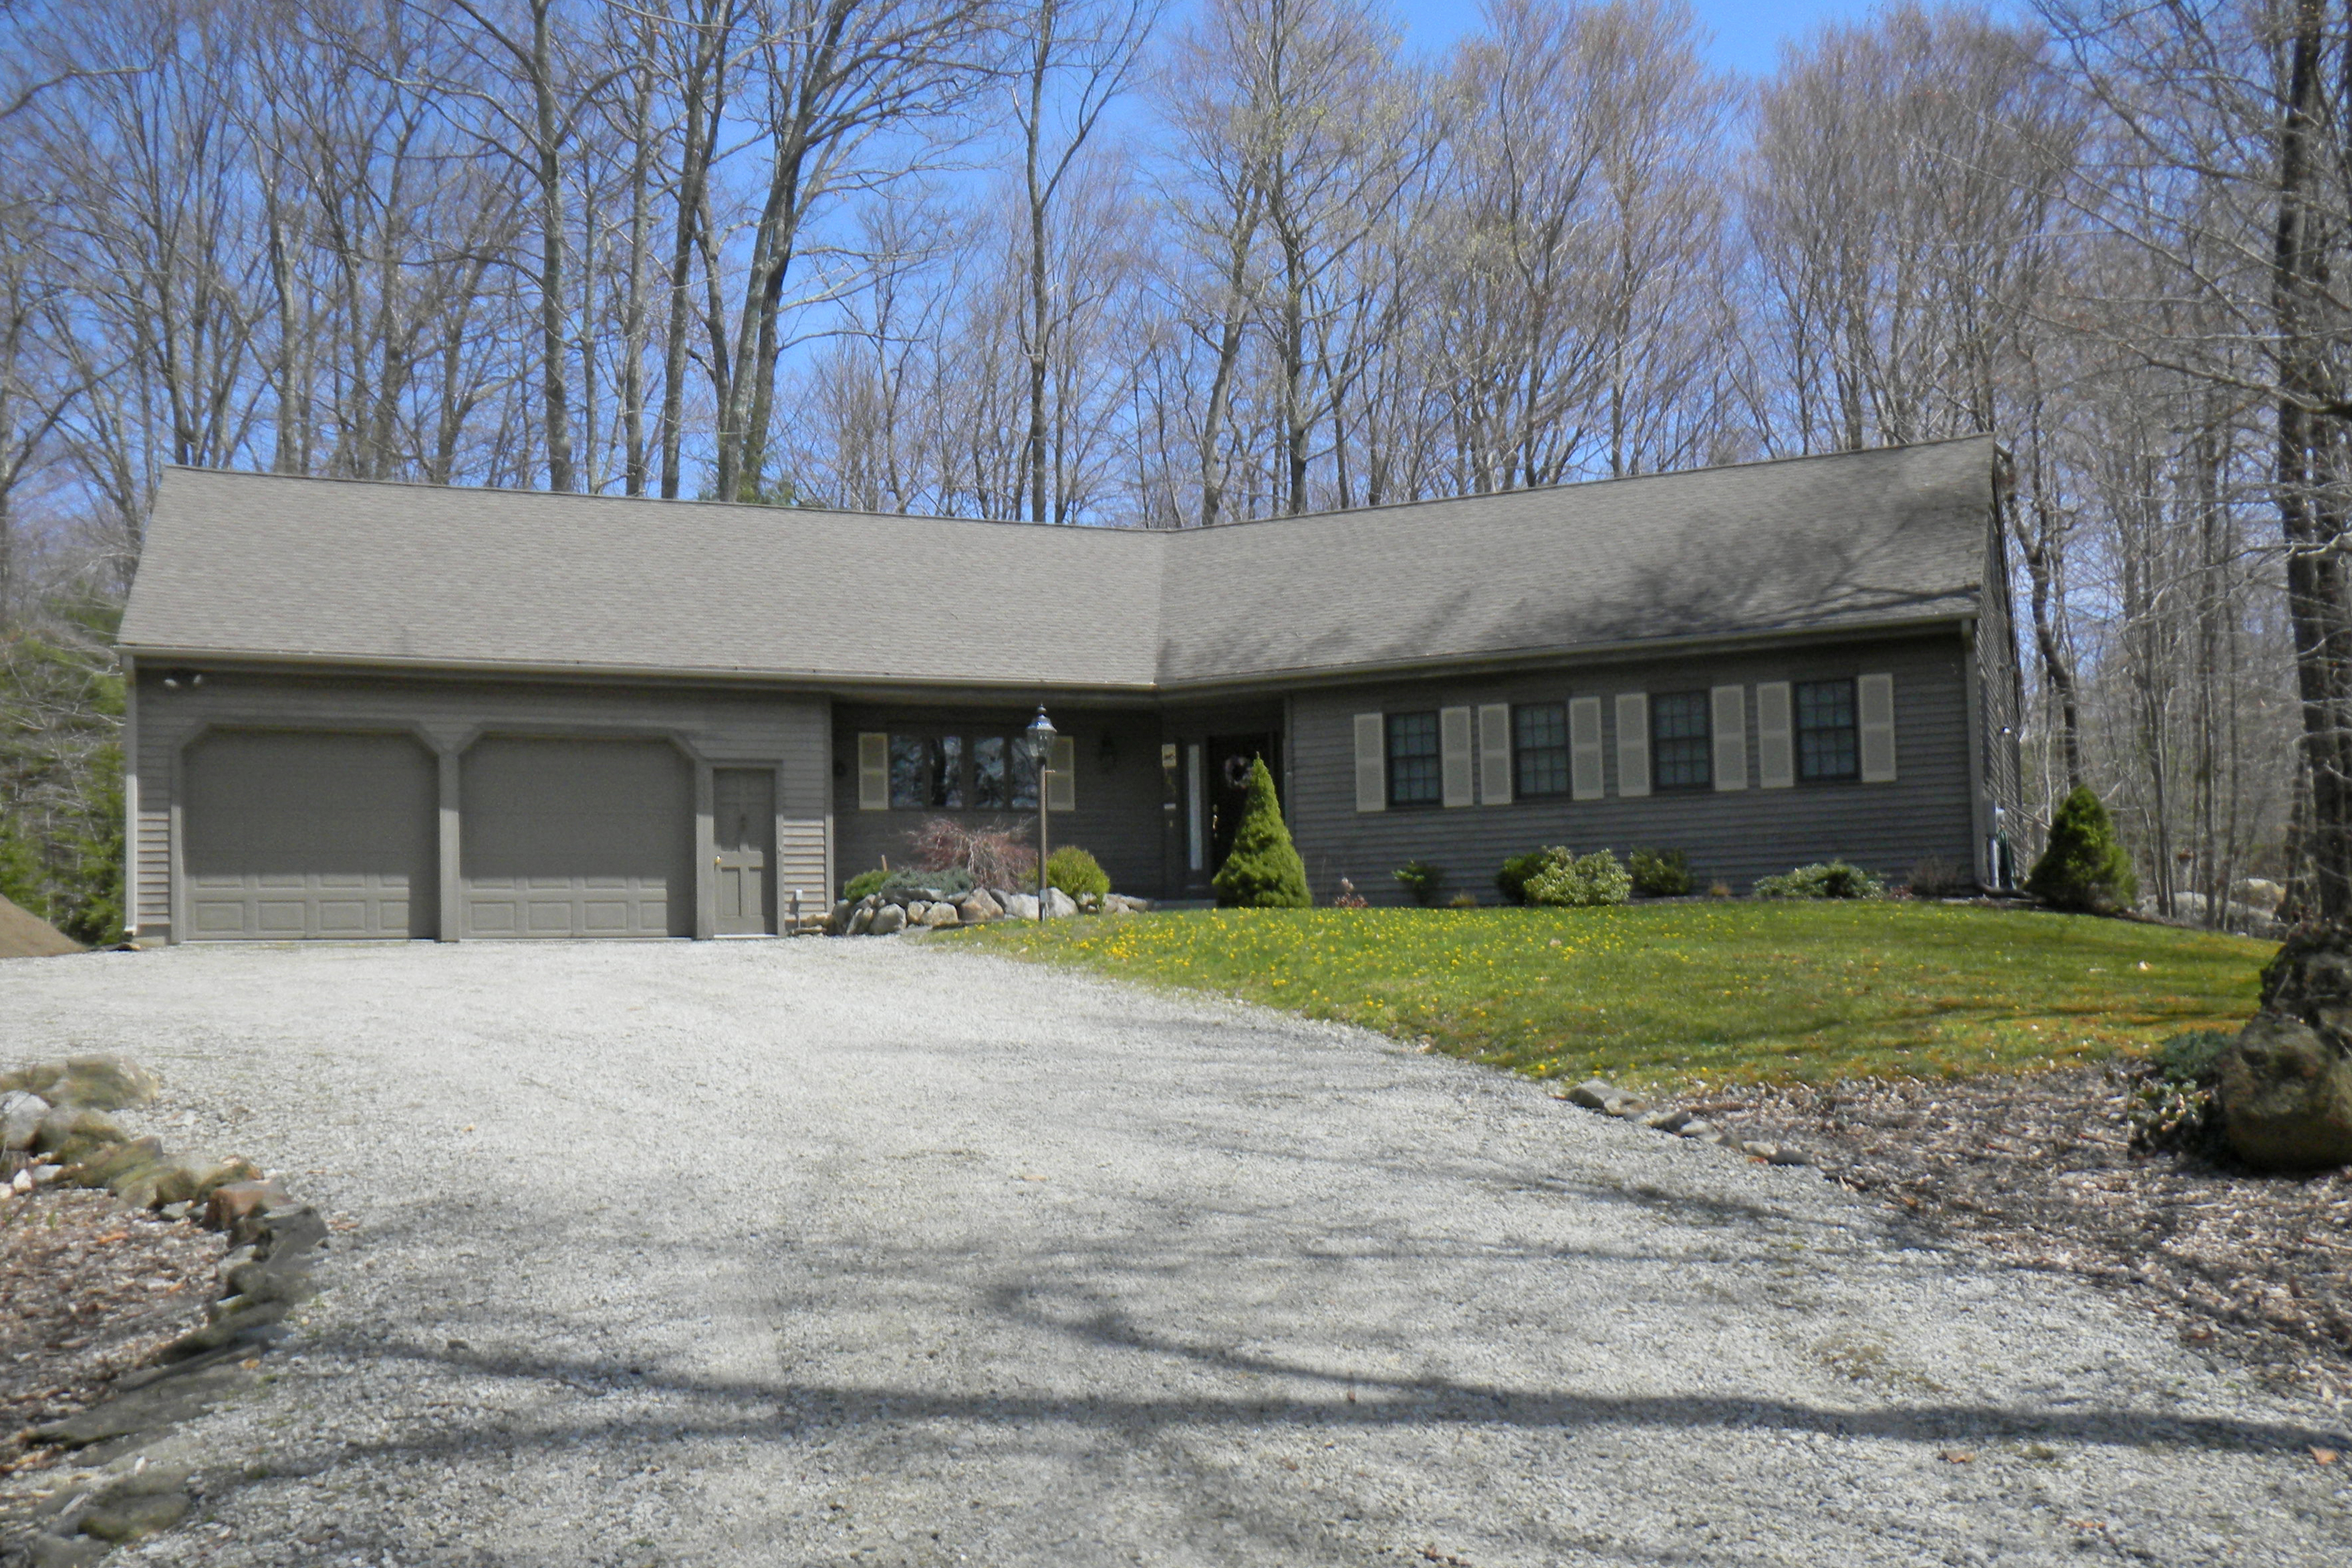 Maison unifamiliale pour l Vente à Expansive Single Level 143 Wellsford Dr Goshen, Connecticut, 06756 États-Unis